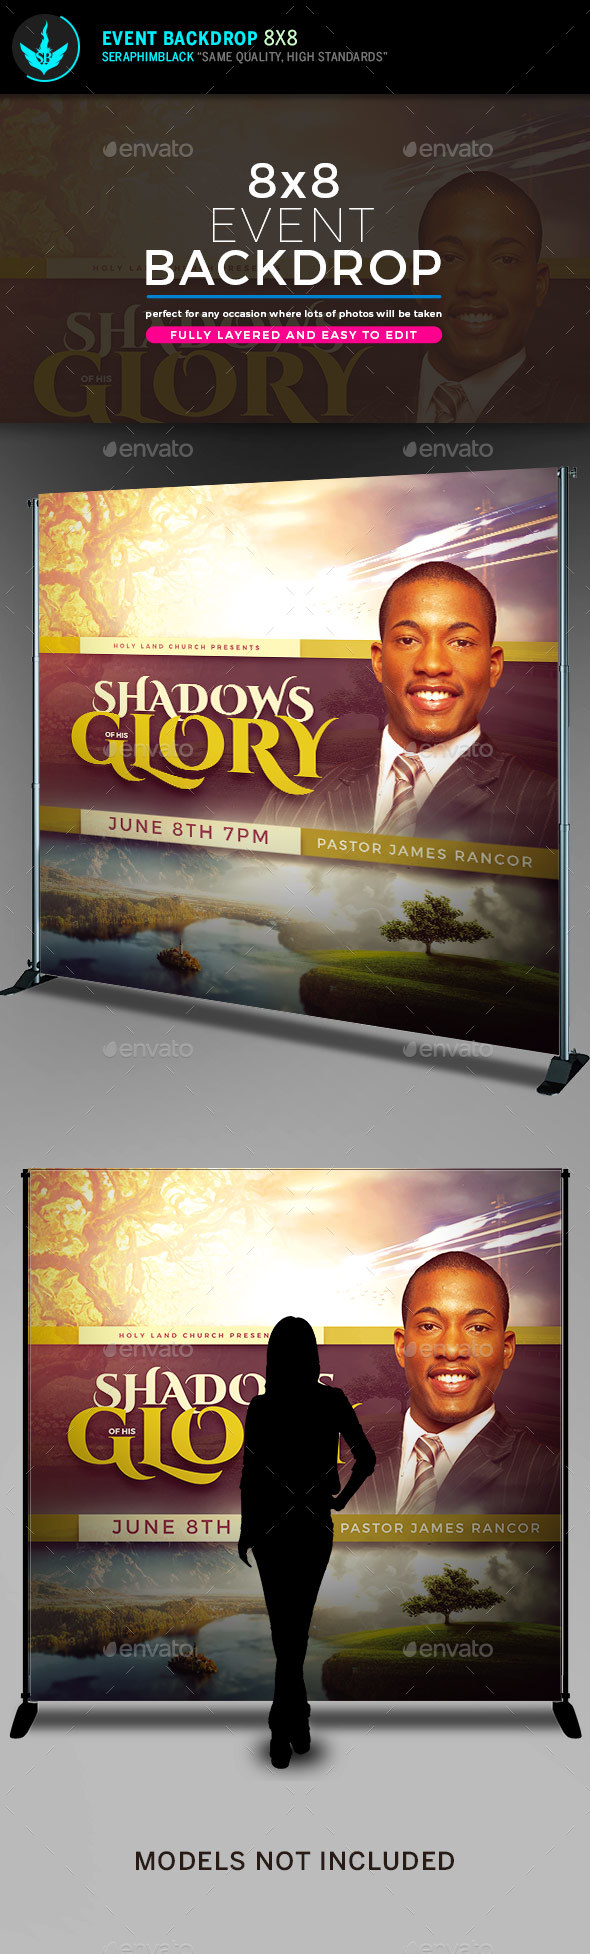 Shadows of His Glory 8x8 Backdrop Template - Signage Print Templates